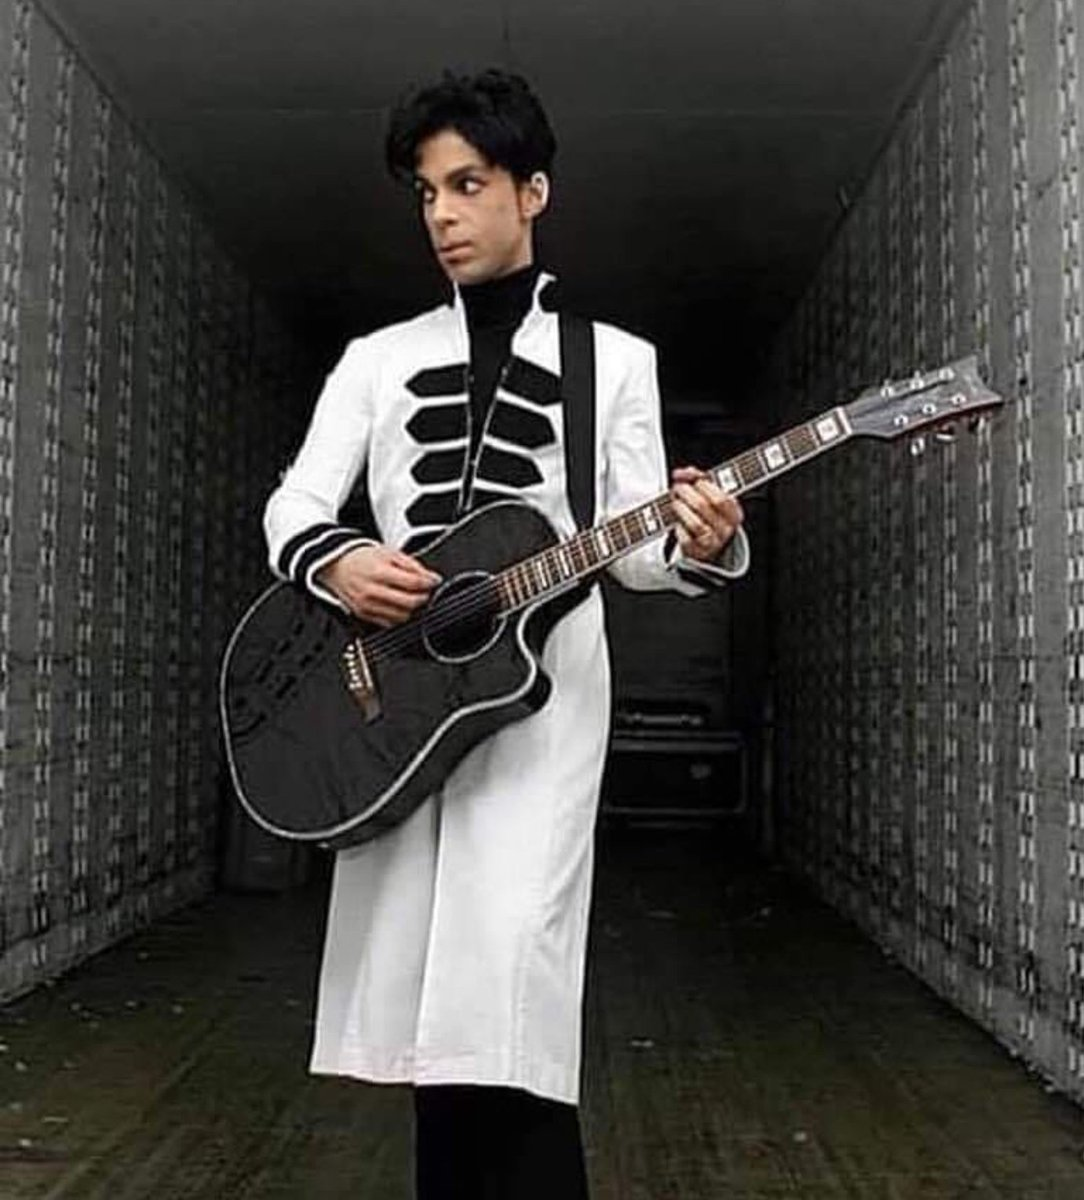 PRINCE  Photography by Afshin Shahidi  #Prince4Ever  <br>http://pic.twitter.com/ZuRKGjBWx5